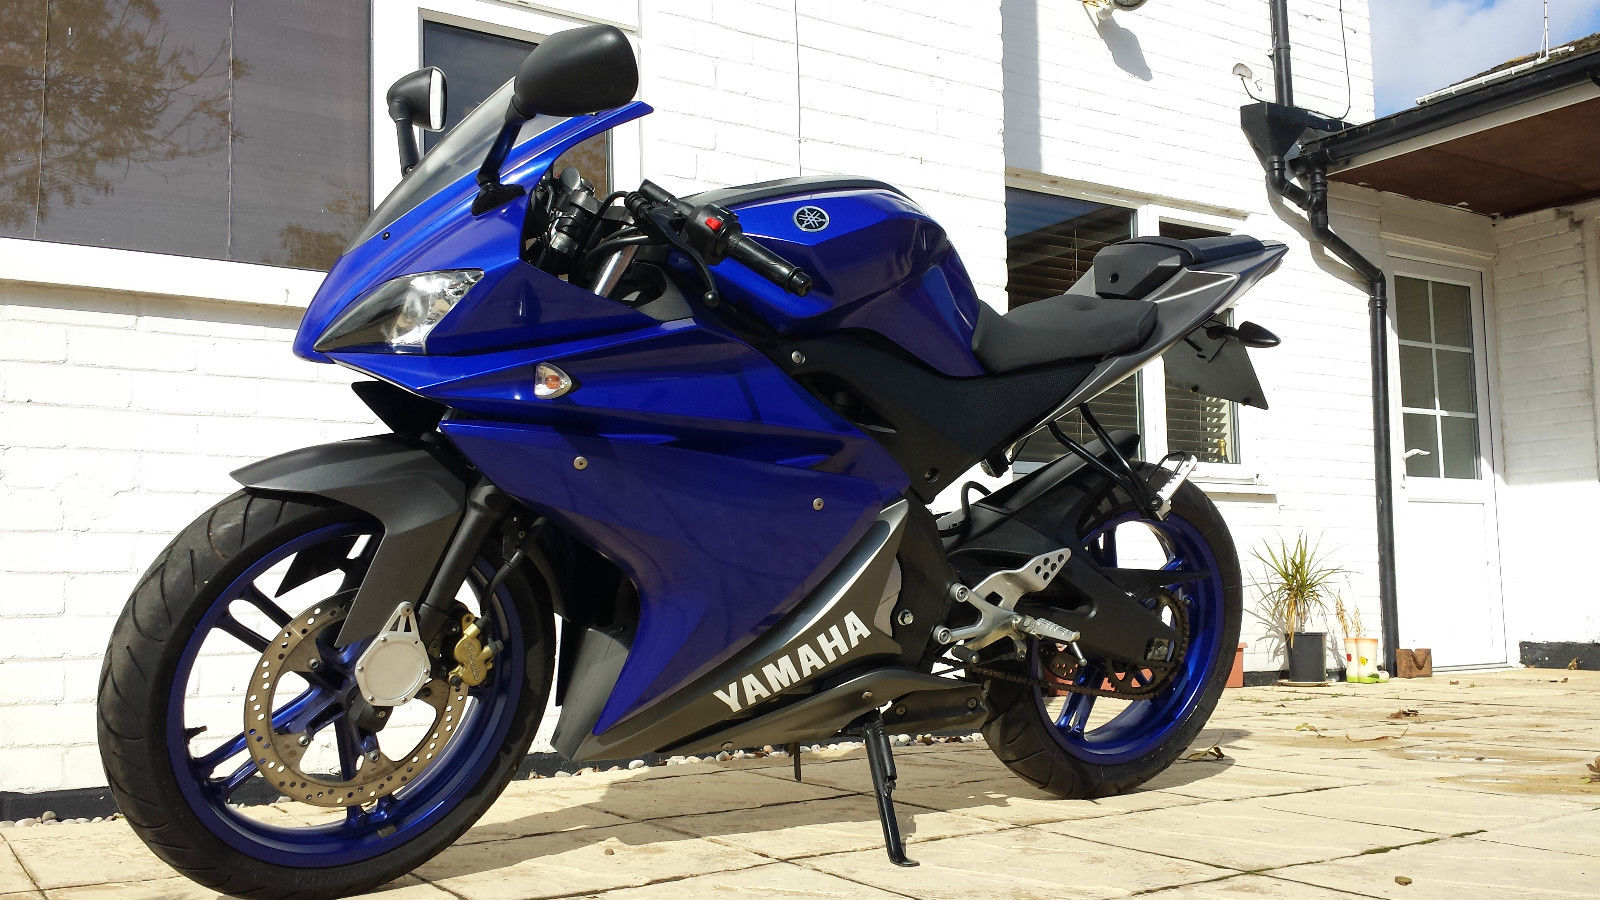 yamaha yzf r125 yzfr125 125 125cc learner legal 4 stroke sports sportsbike look. Black Bedroom Furniture Sets. Home Design Ideas